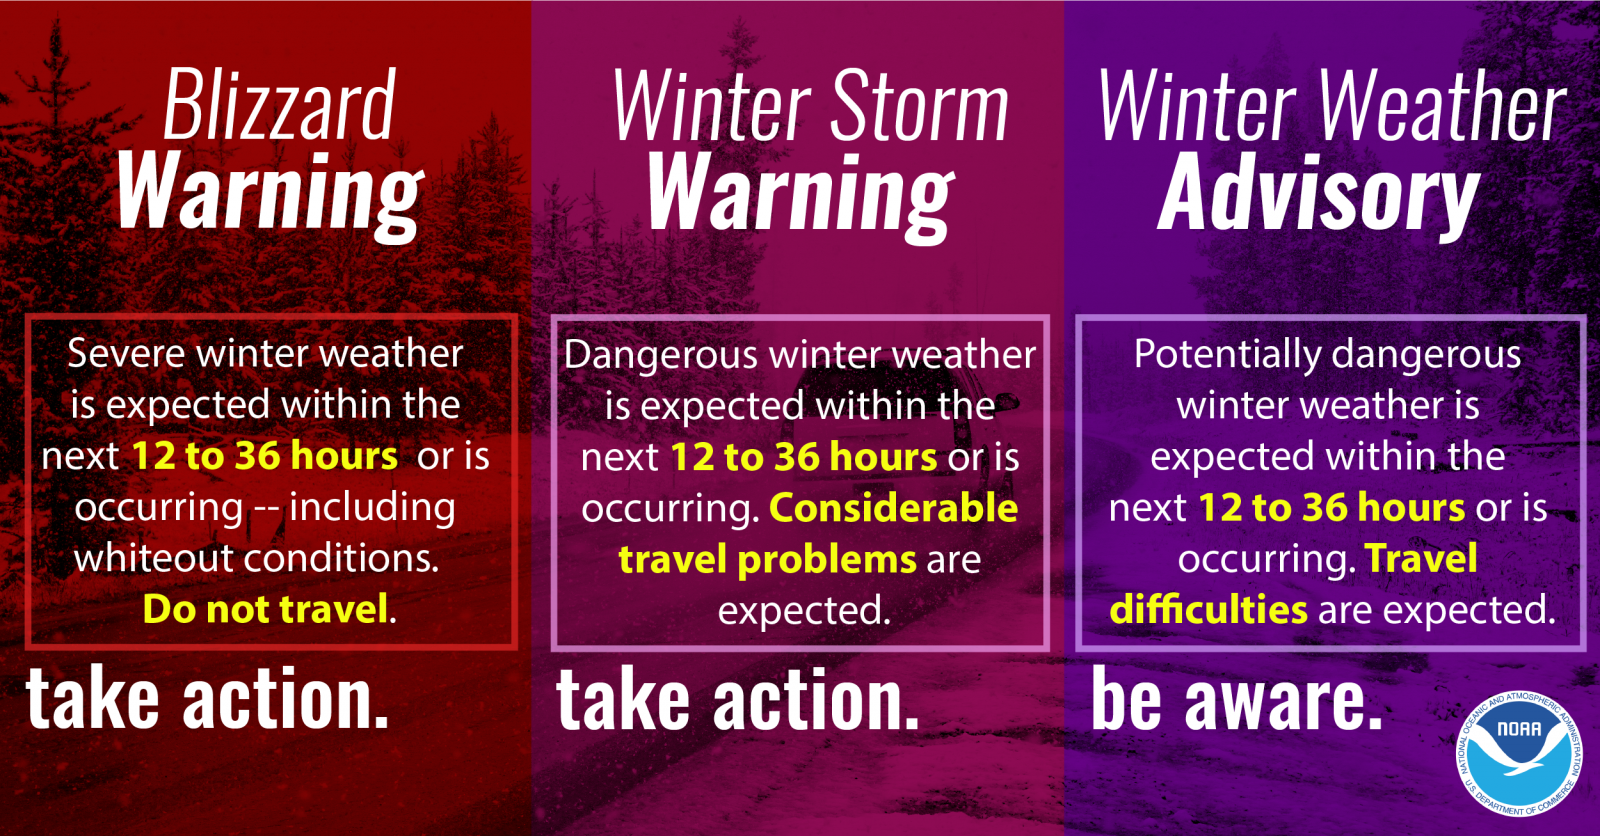 Differences with Watches, Warnings and Advisories